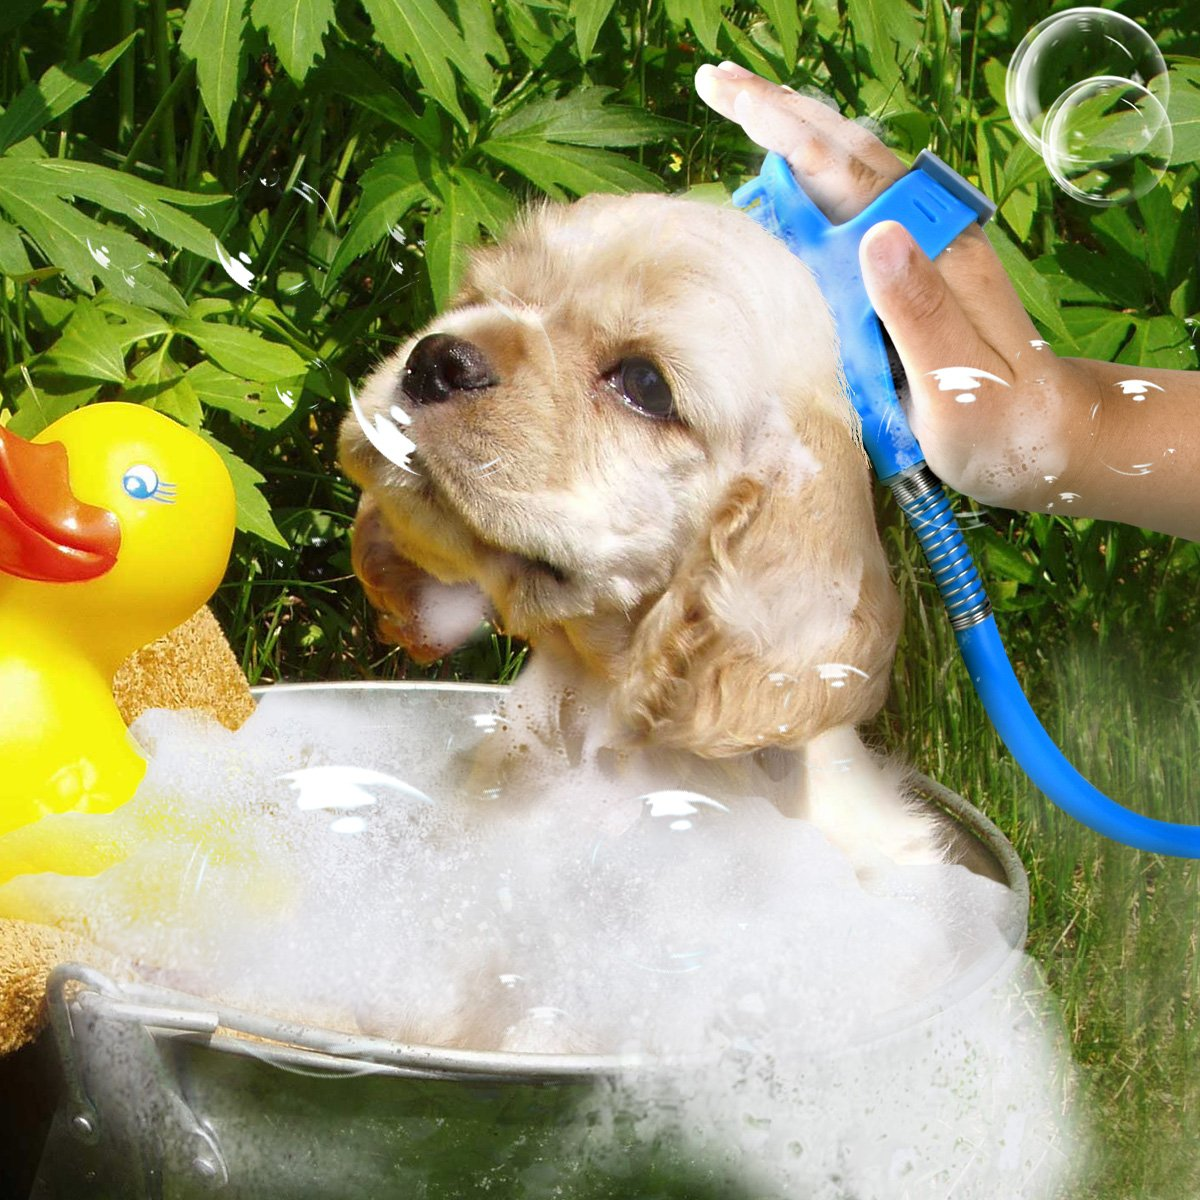 Ducking Pet Shower Sprayer with Brush, Multi-Functional Pet Bathing Tool with ON/OFF Switch for Dog, Cat, Horse Outdoor Grooming, Adjustable handheld Massage with 8 Foot Hose and 2 Hose Adapte by Ducking (Image #6)